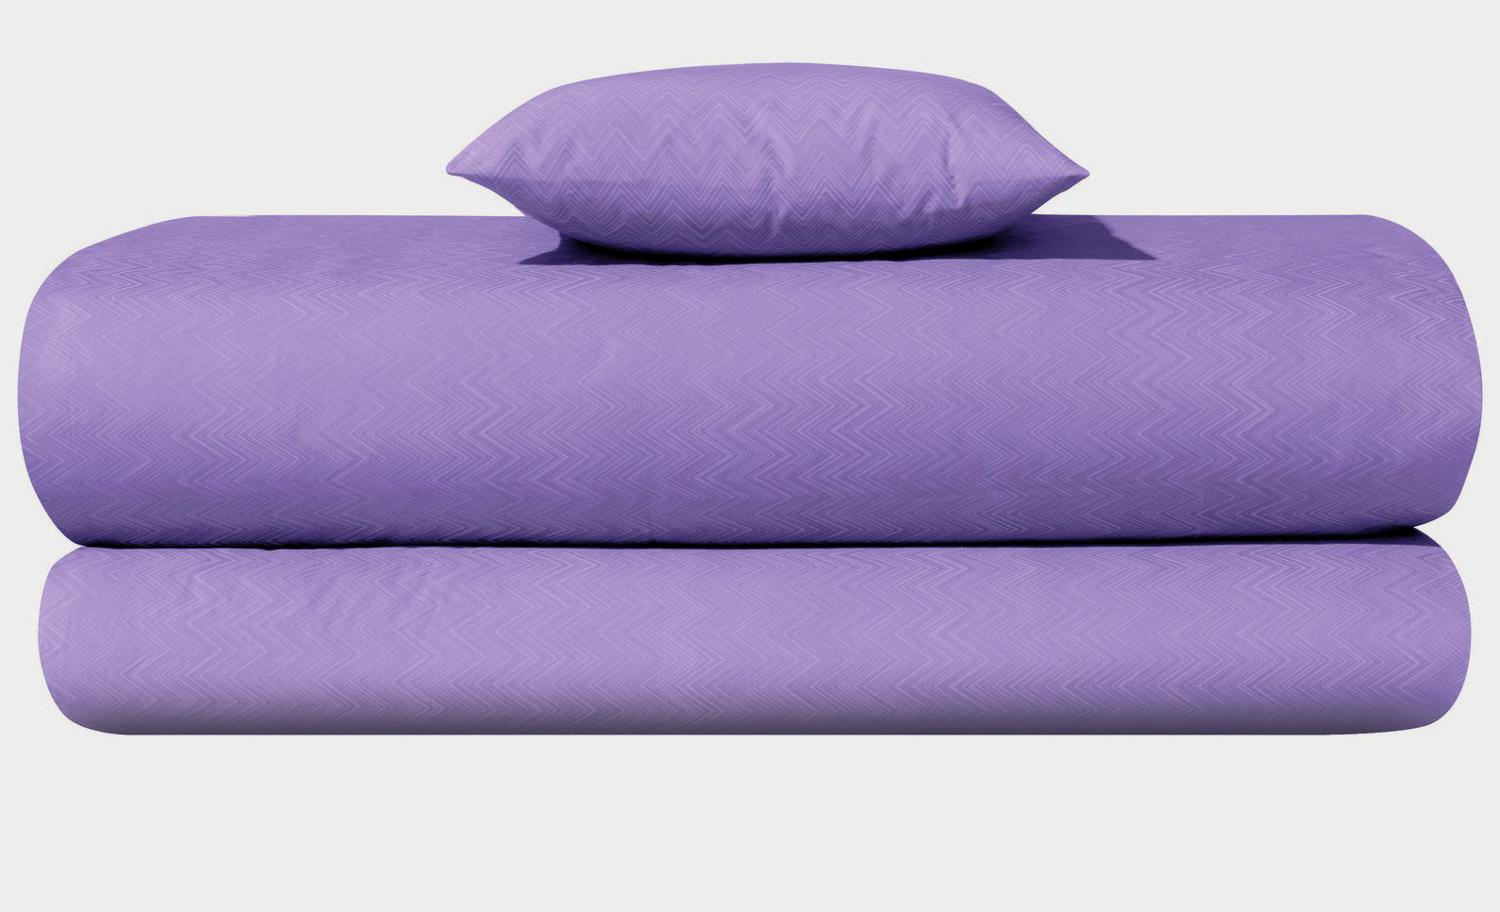 purple sheets mfsheets plum l mfsheets plum l purple sheets - covers print sheets attack on titan bed sheets blankets covers